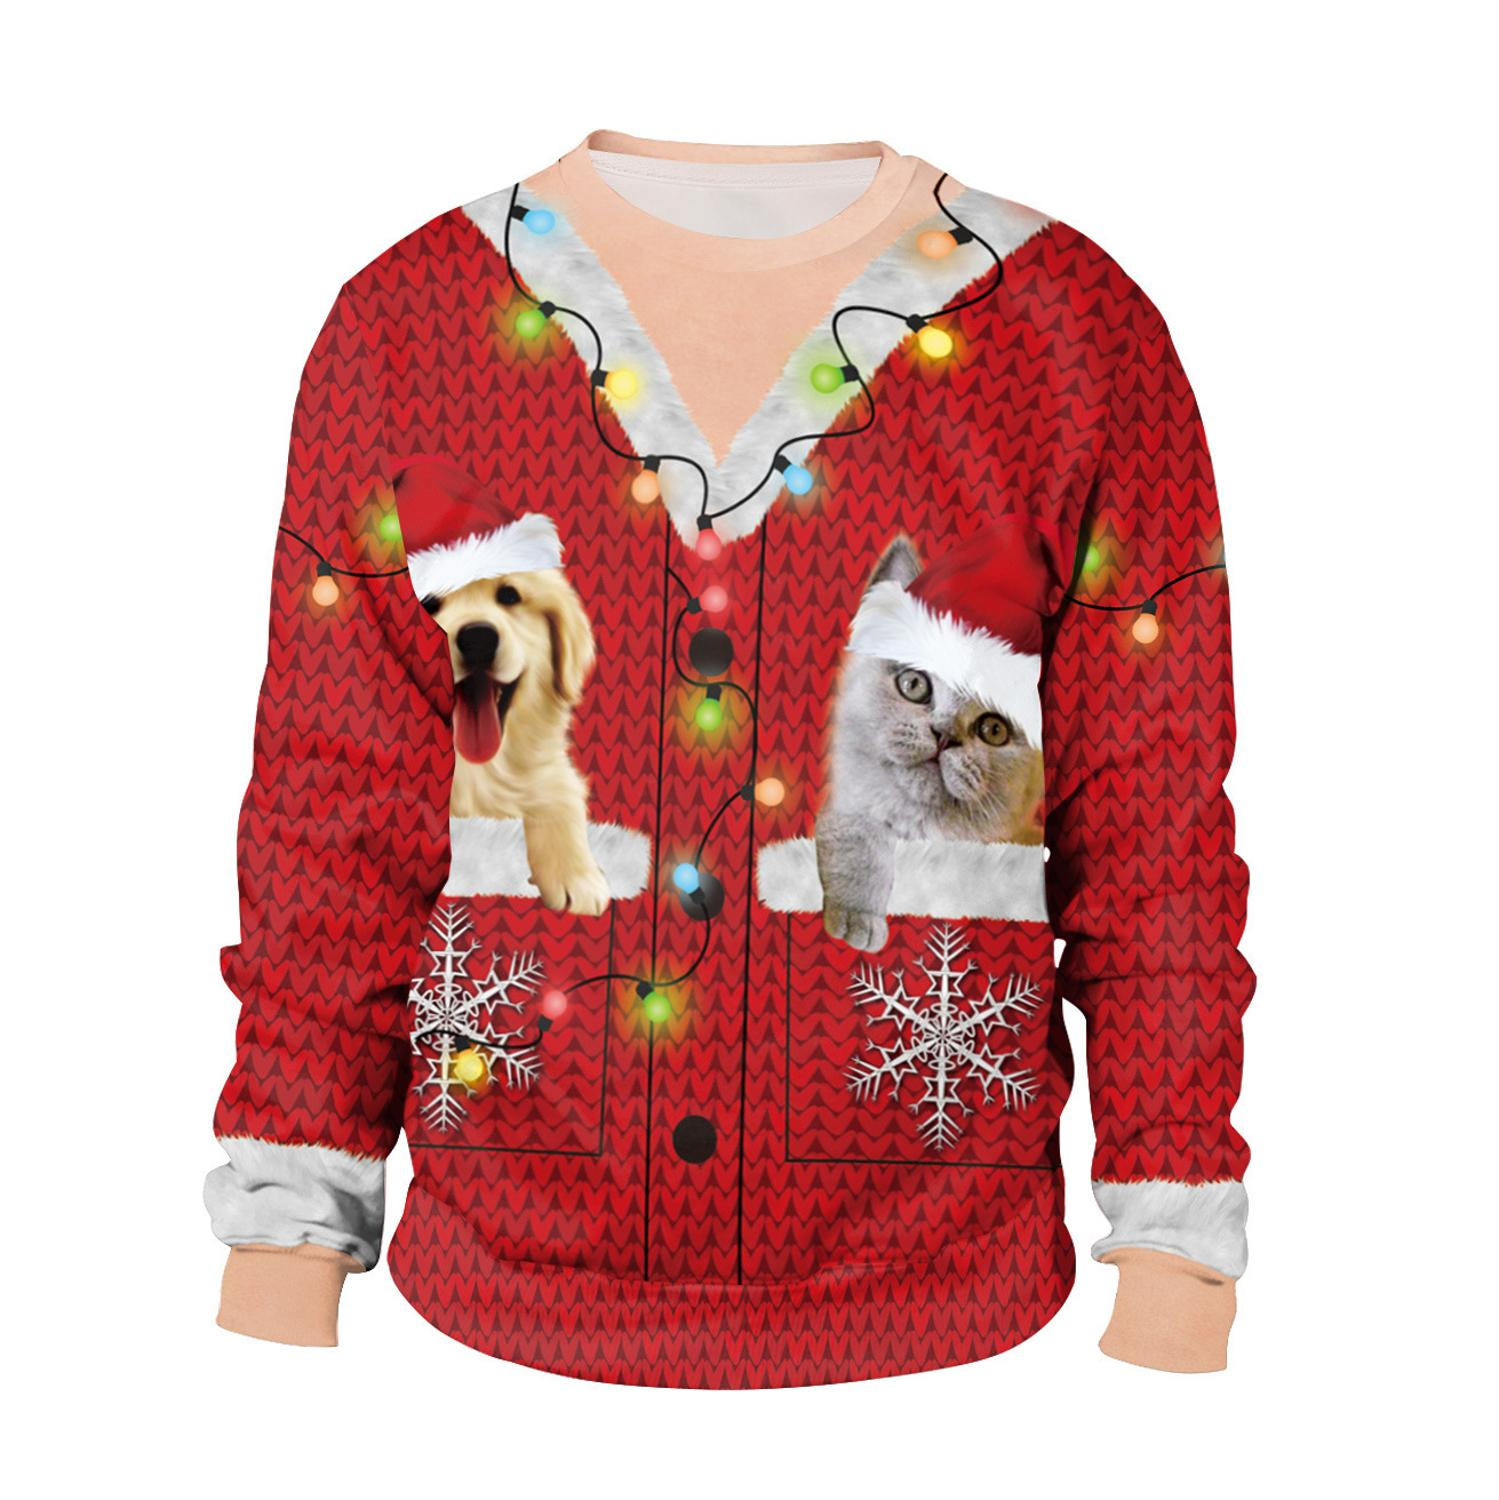 2019 Winter Christmas Sweater For Women Warm Funny Thick Pullover 3D Print Casual Deer Snow New Year Female Male Sweater